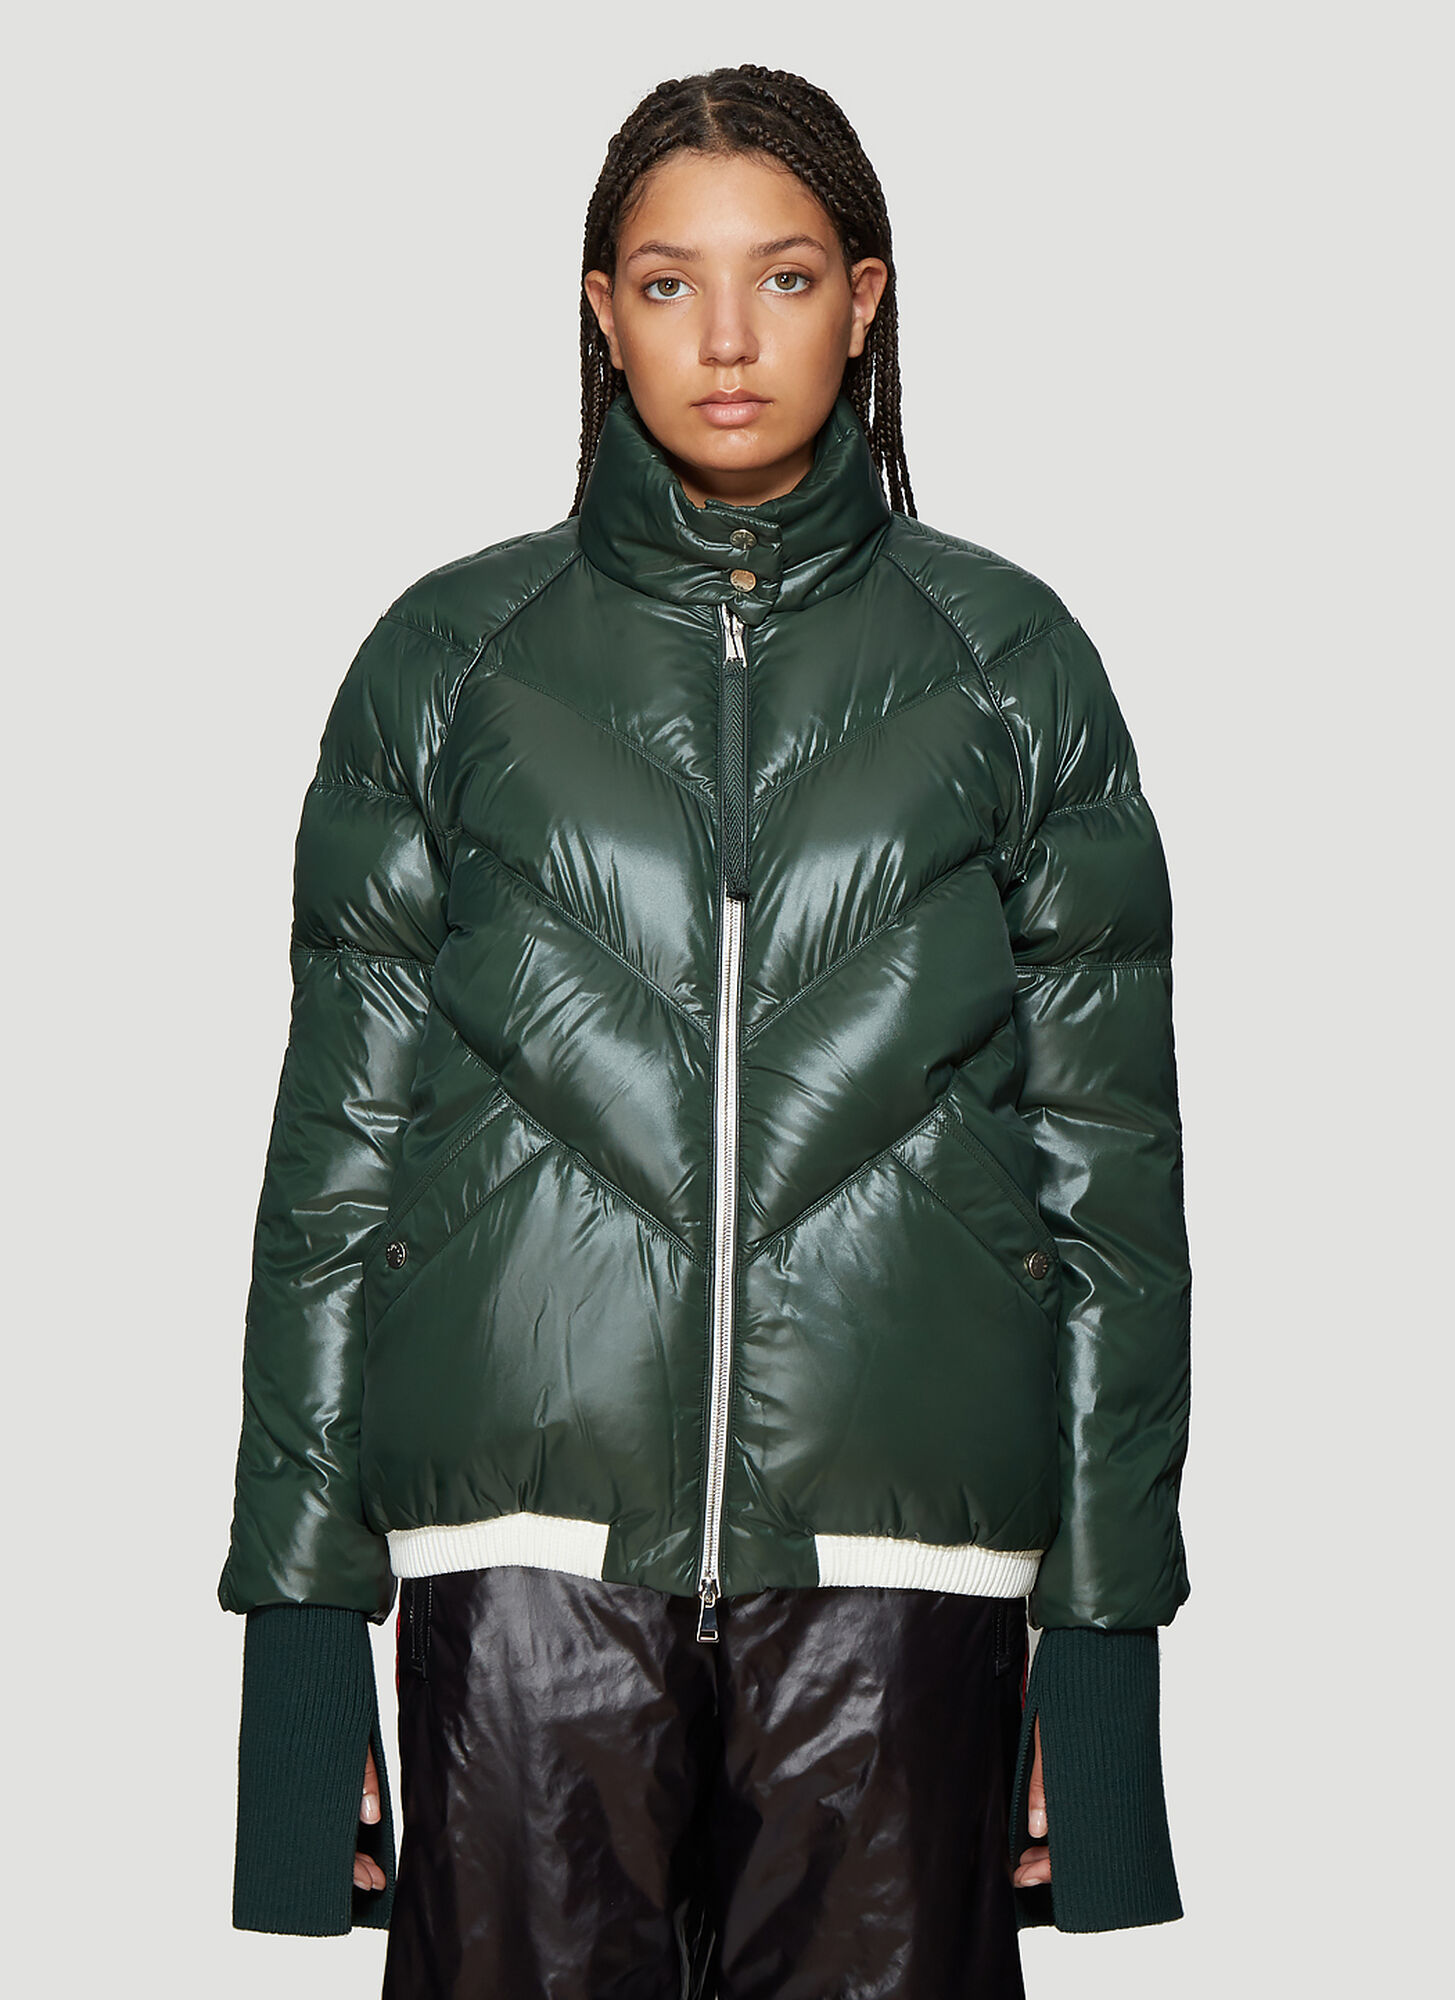 2 MONCLER 1952 Padded Down Jacket in Green